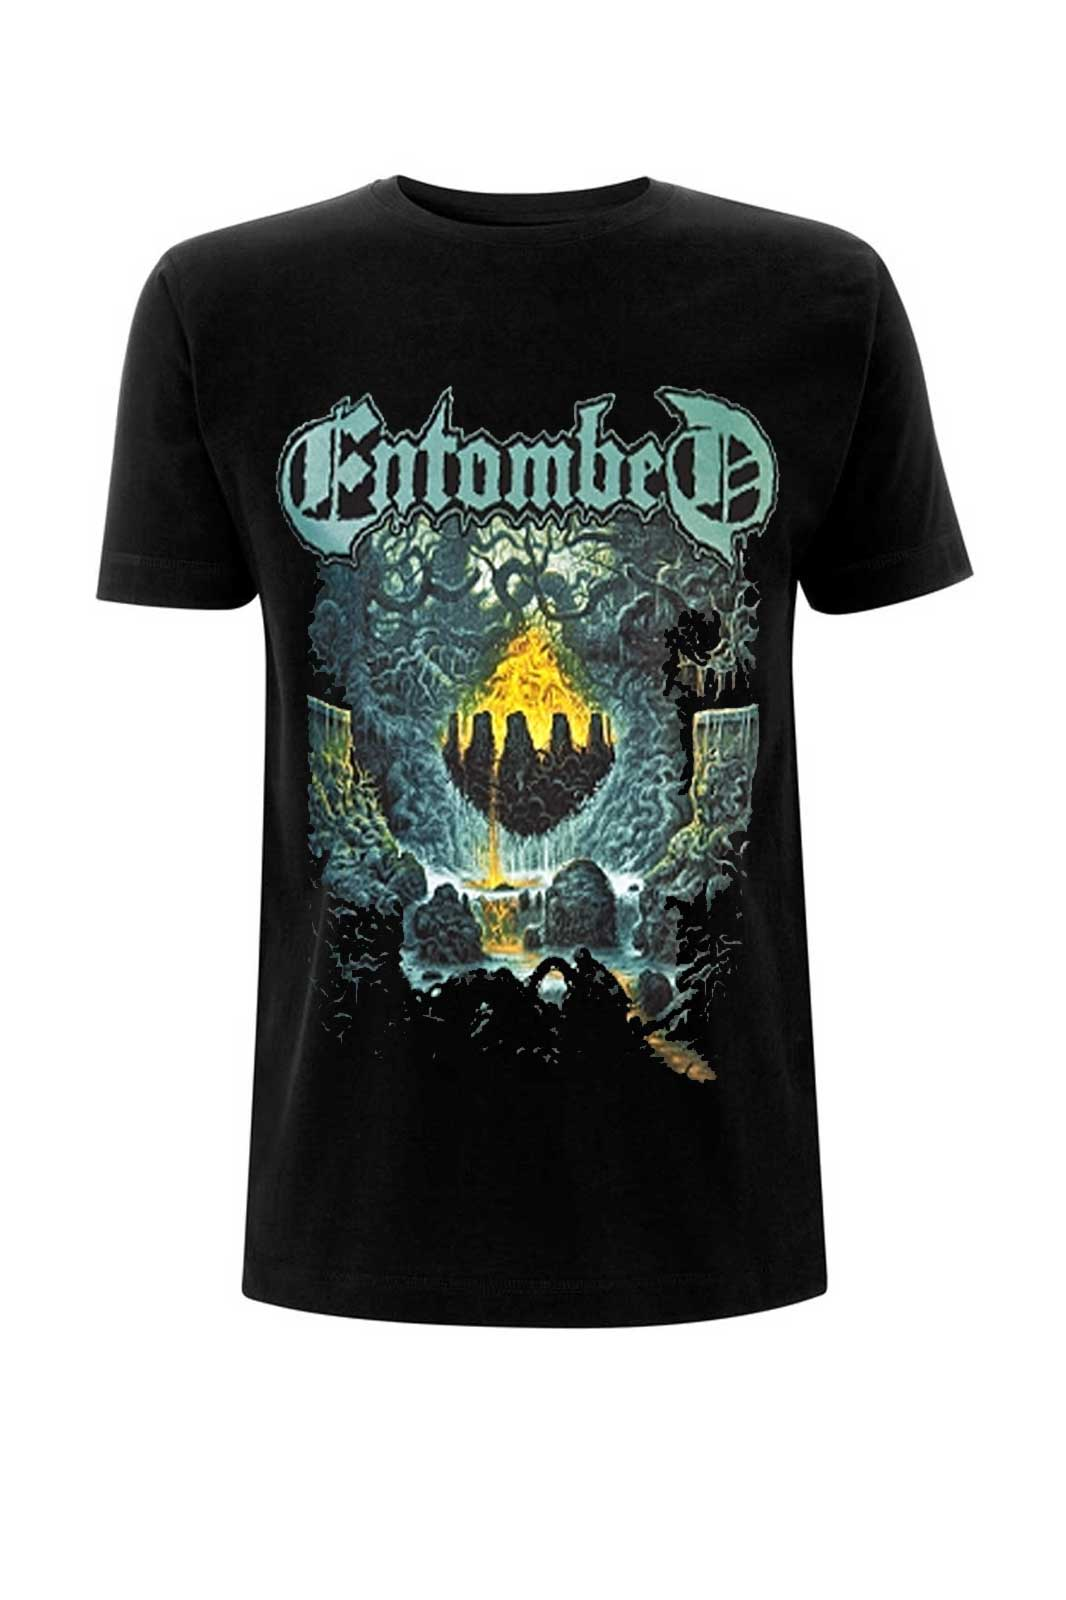 official merchandise tee entombed clandestine